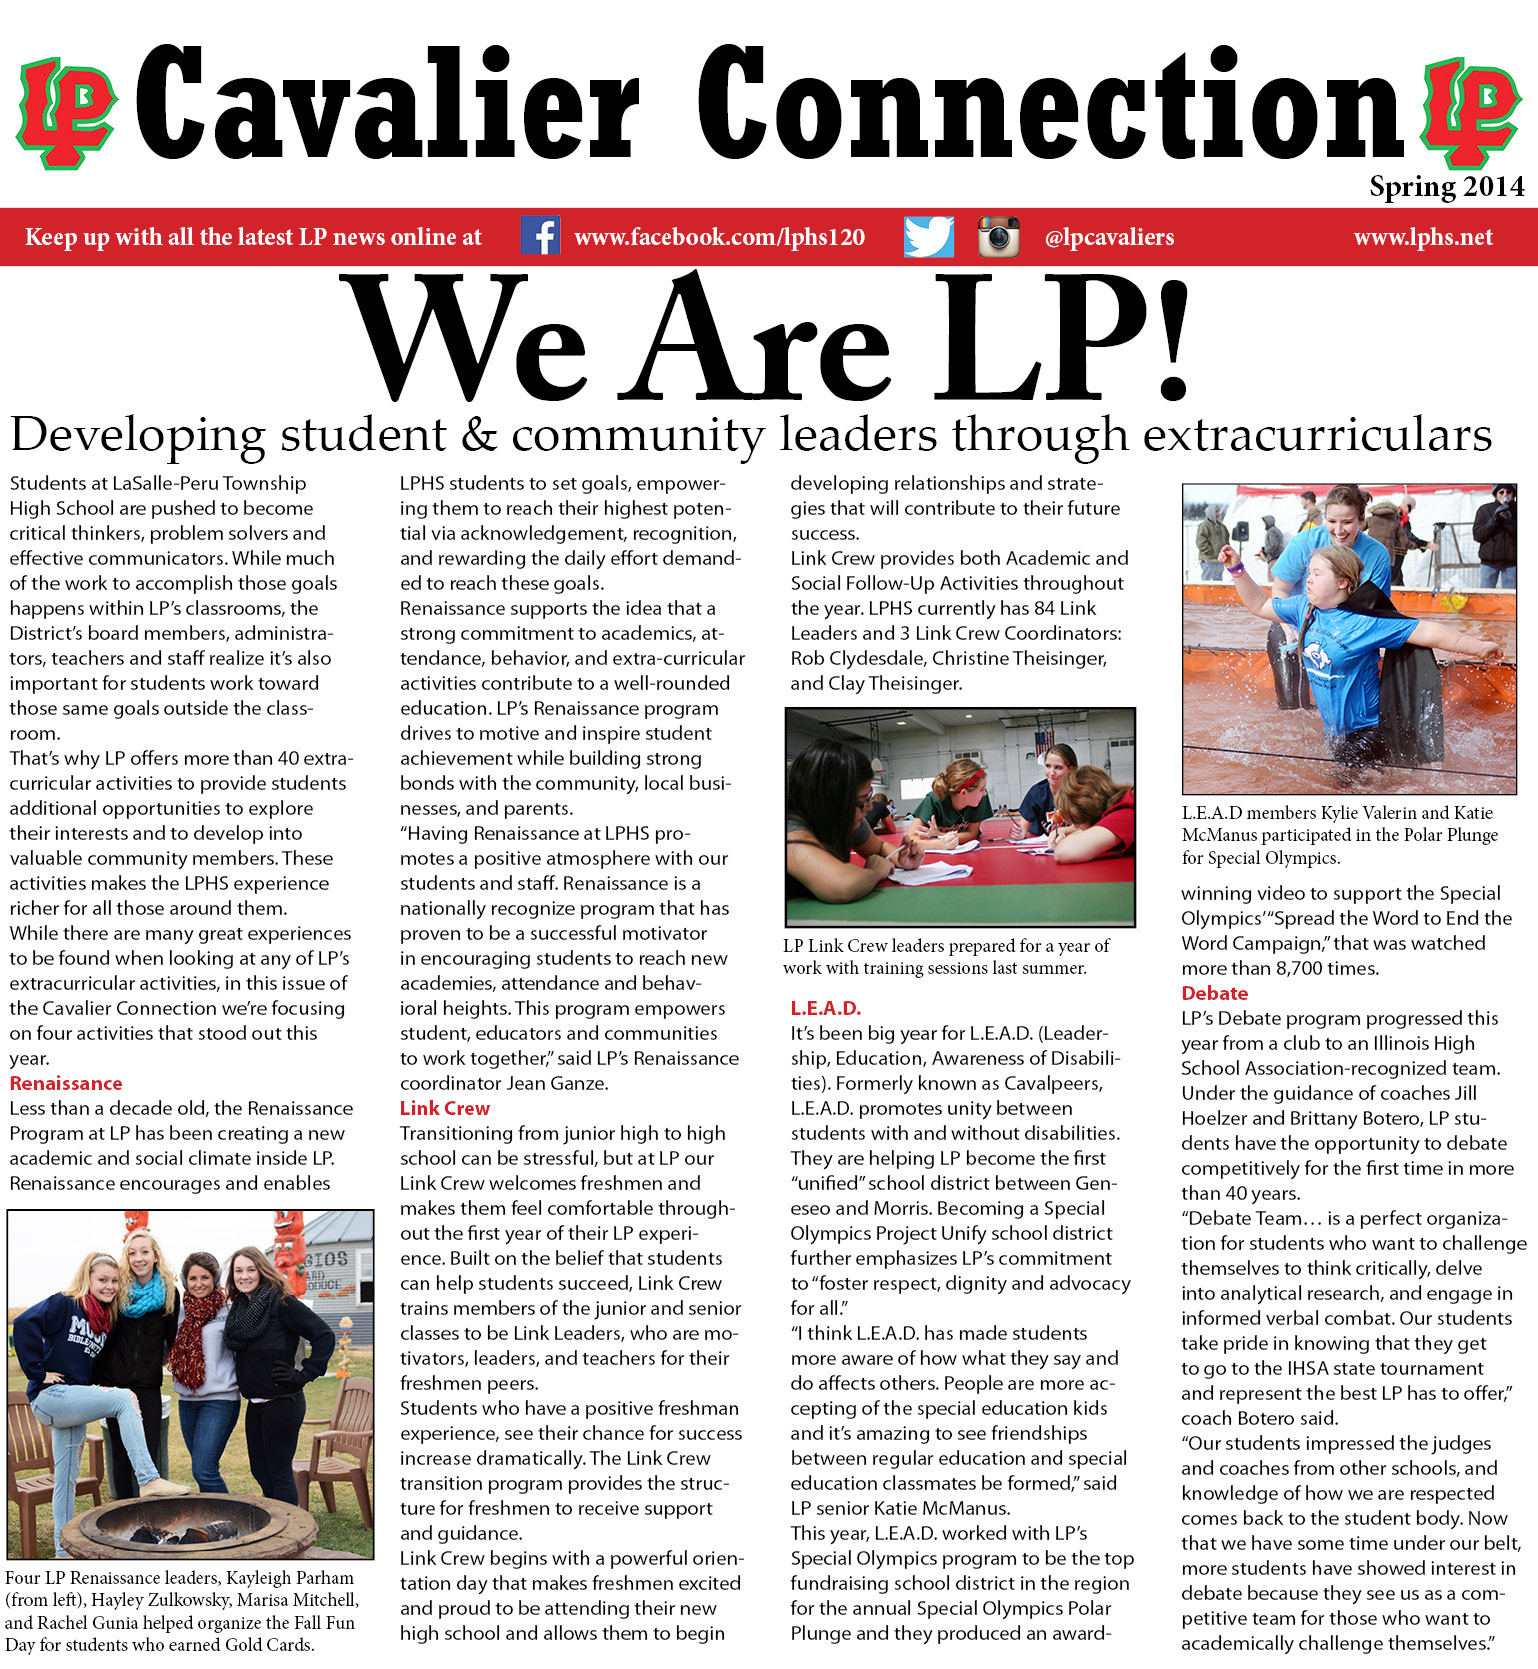 Cav Connection Spring 2014 page 1